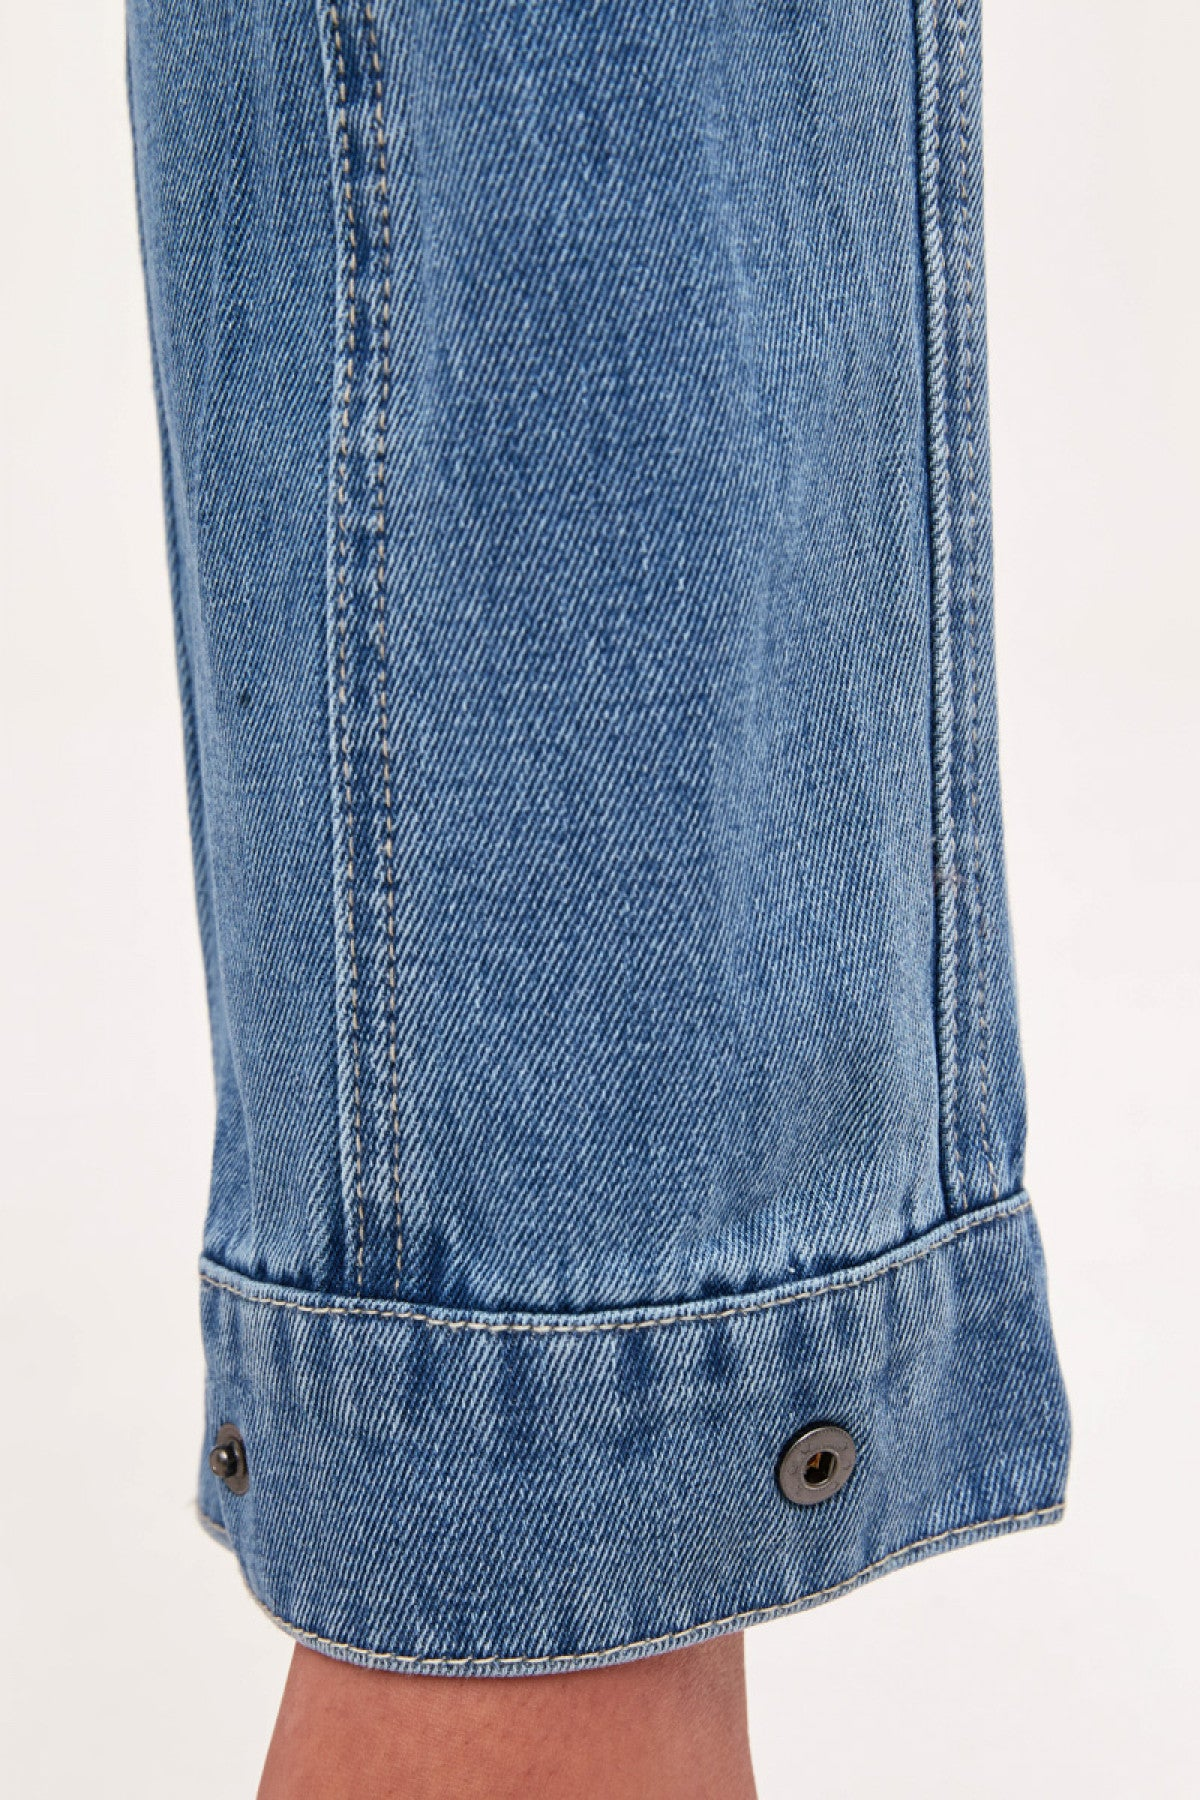 PERIPHERAL JEAN blue denim